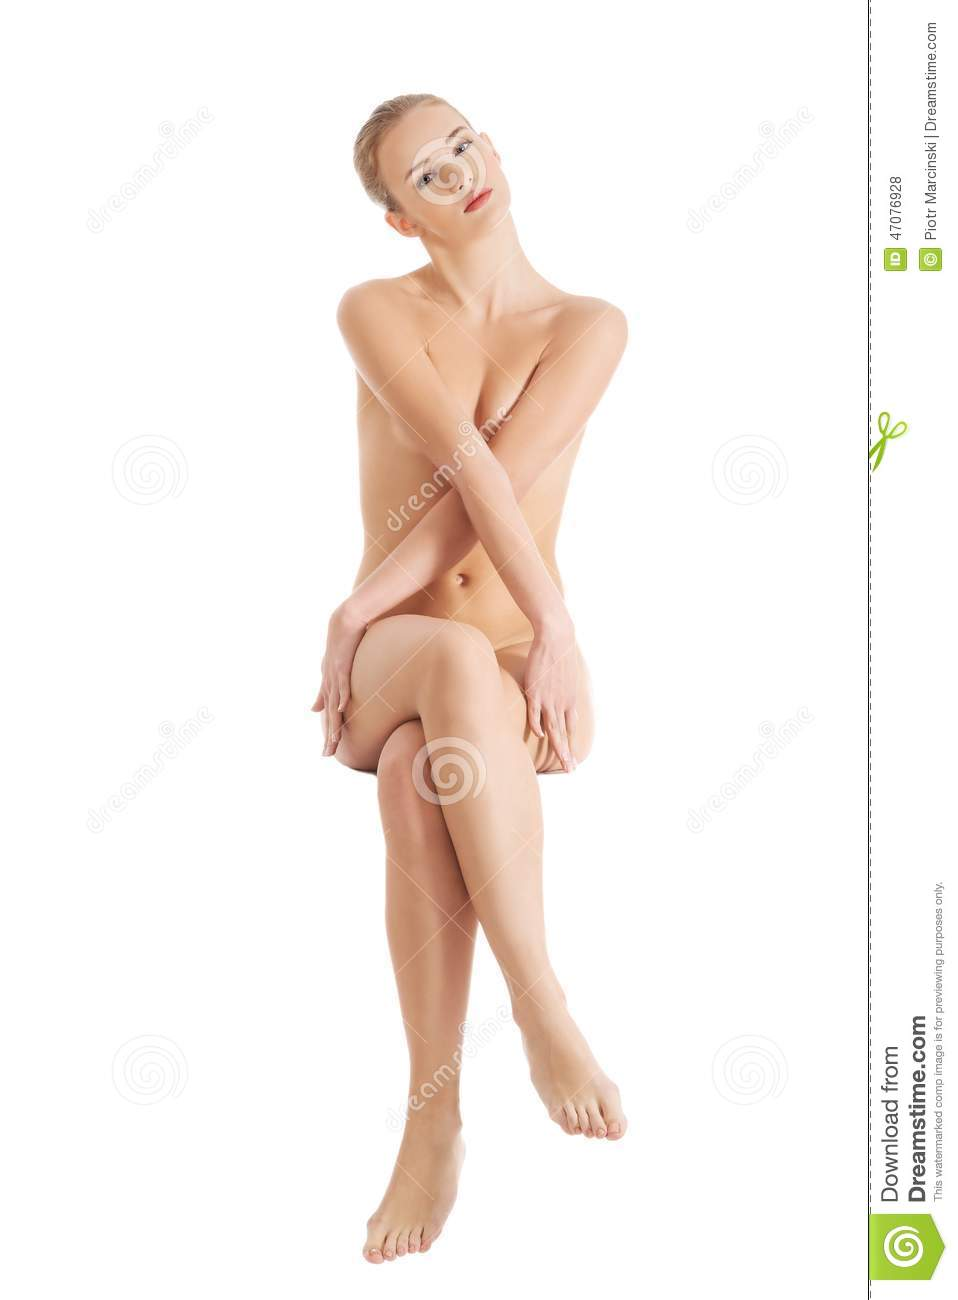 view of naked woman sitting jpg 422x640